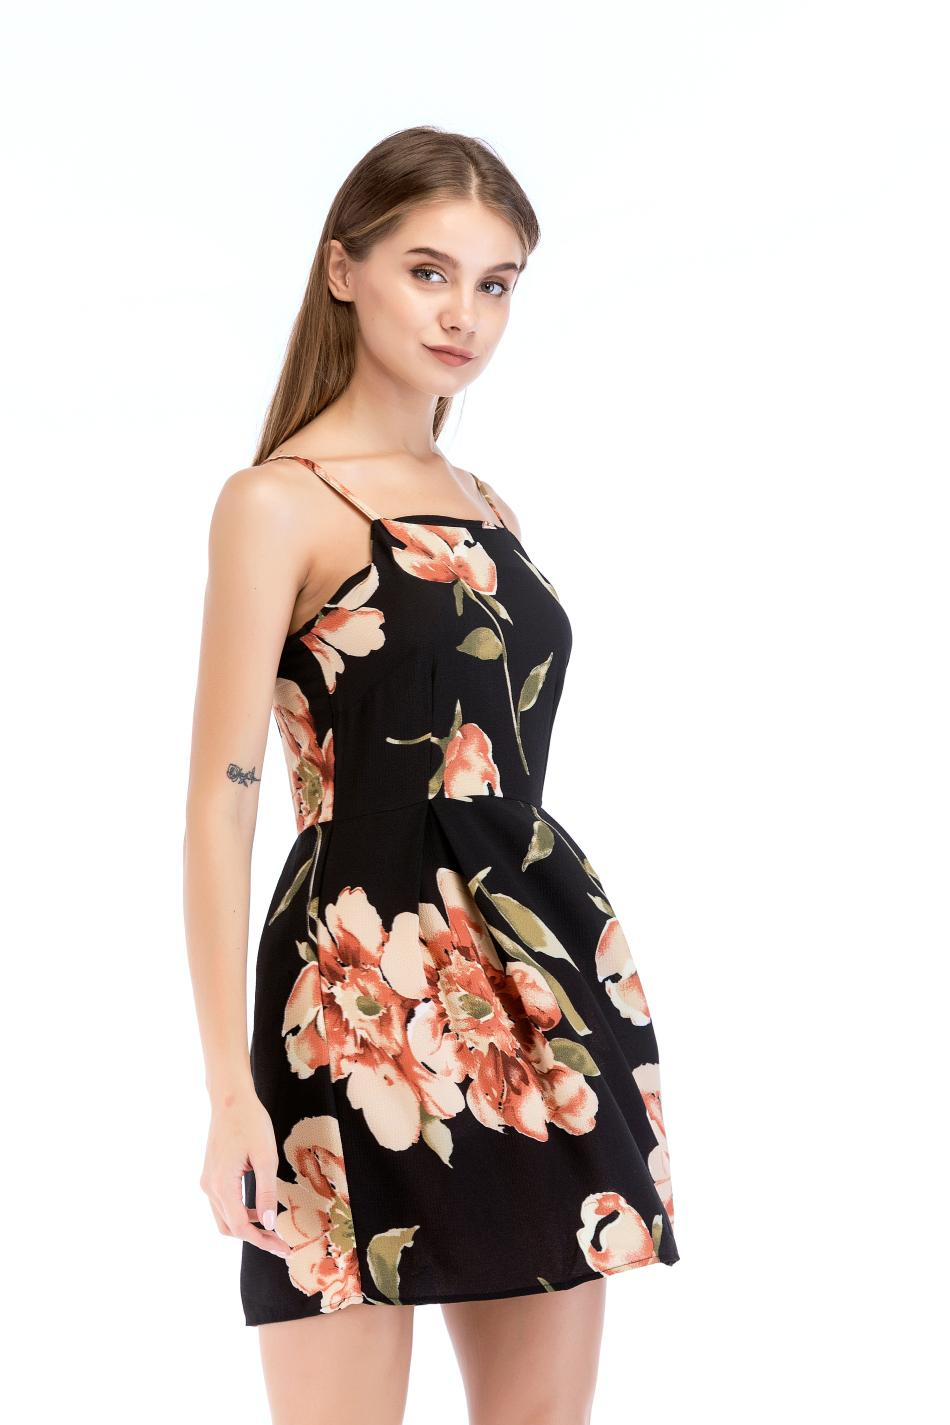 61e748f506d5c4 2018 New Summer Fashion Floral Printed Sleeveless Dresses Casual Harness  Dress Slim A Line Dress Women Dresses White Dress Women Black Dress Casual  From ...